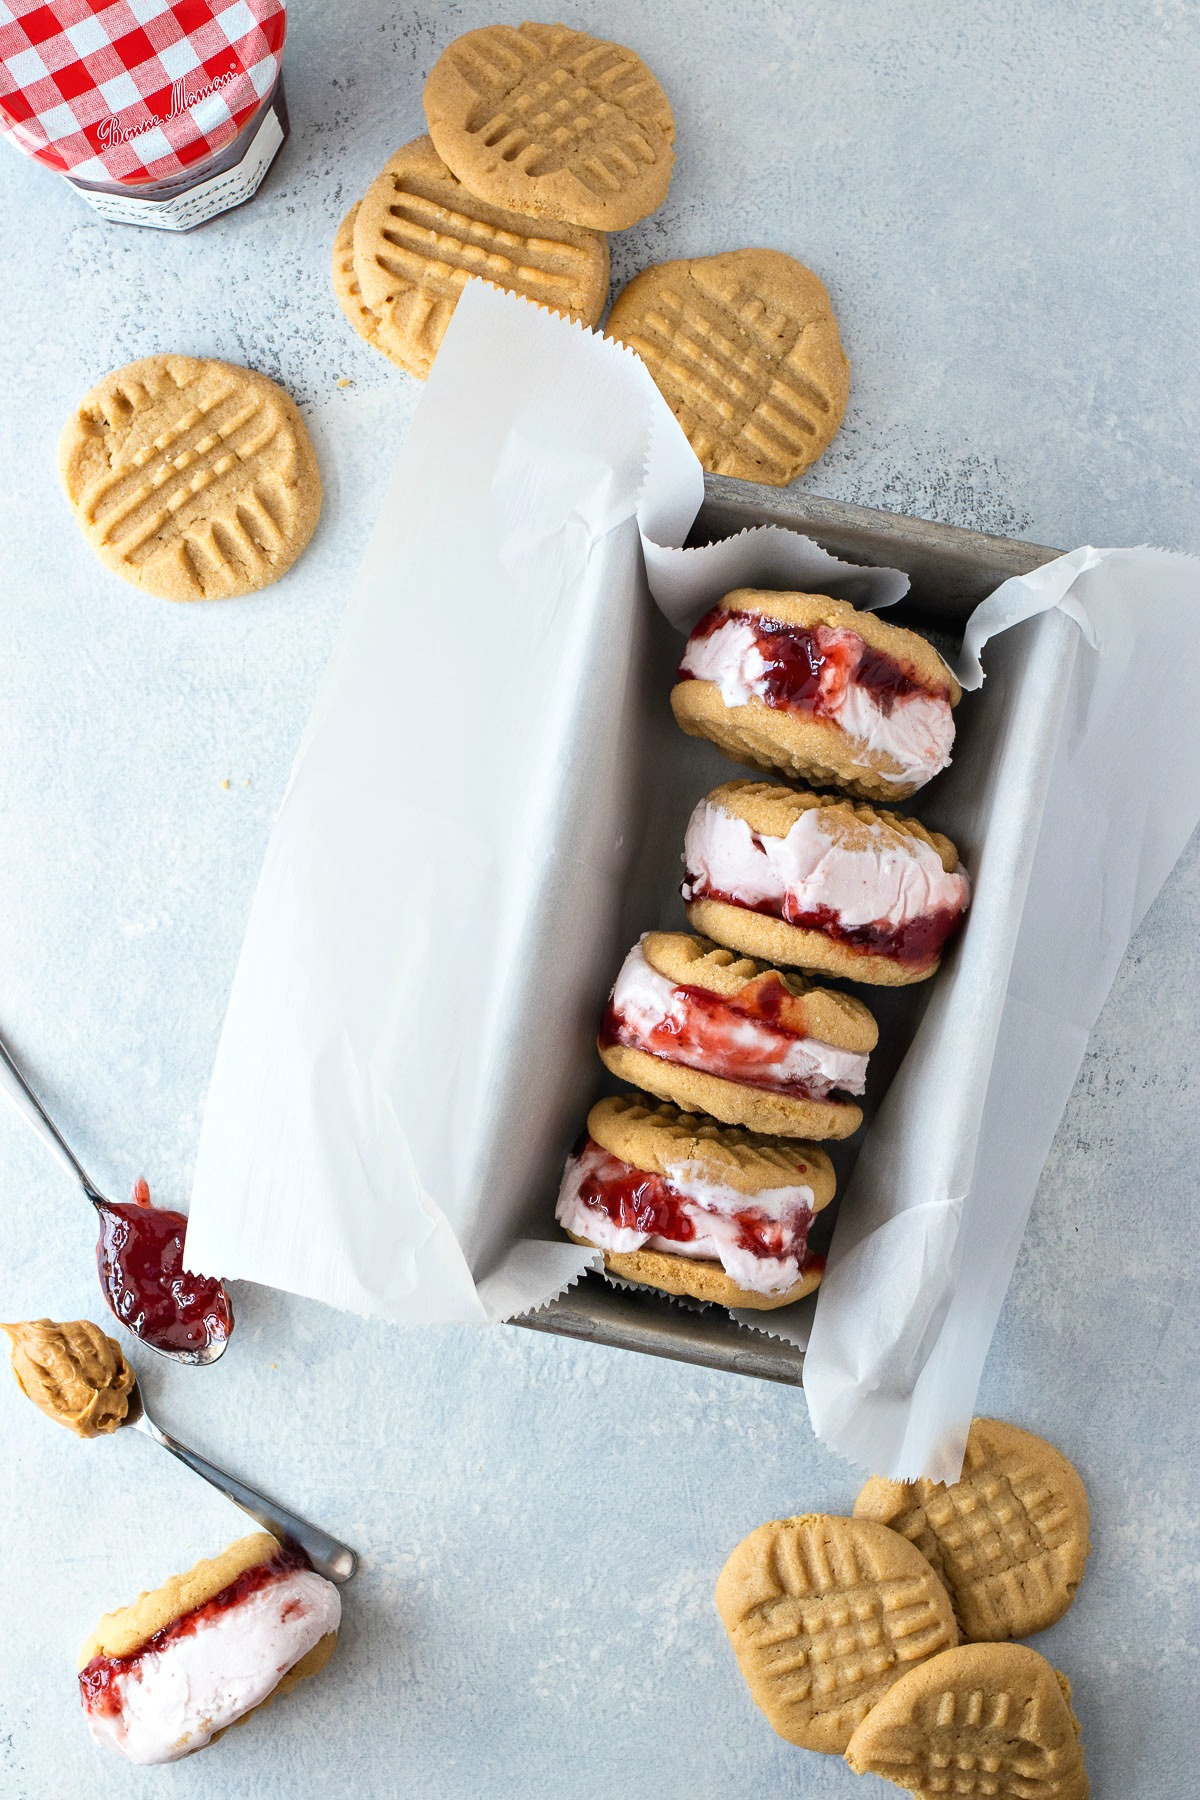 PB&J Ice Cream Sandwiches surrounded by peanut butter cookies and a jelly jar